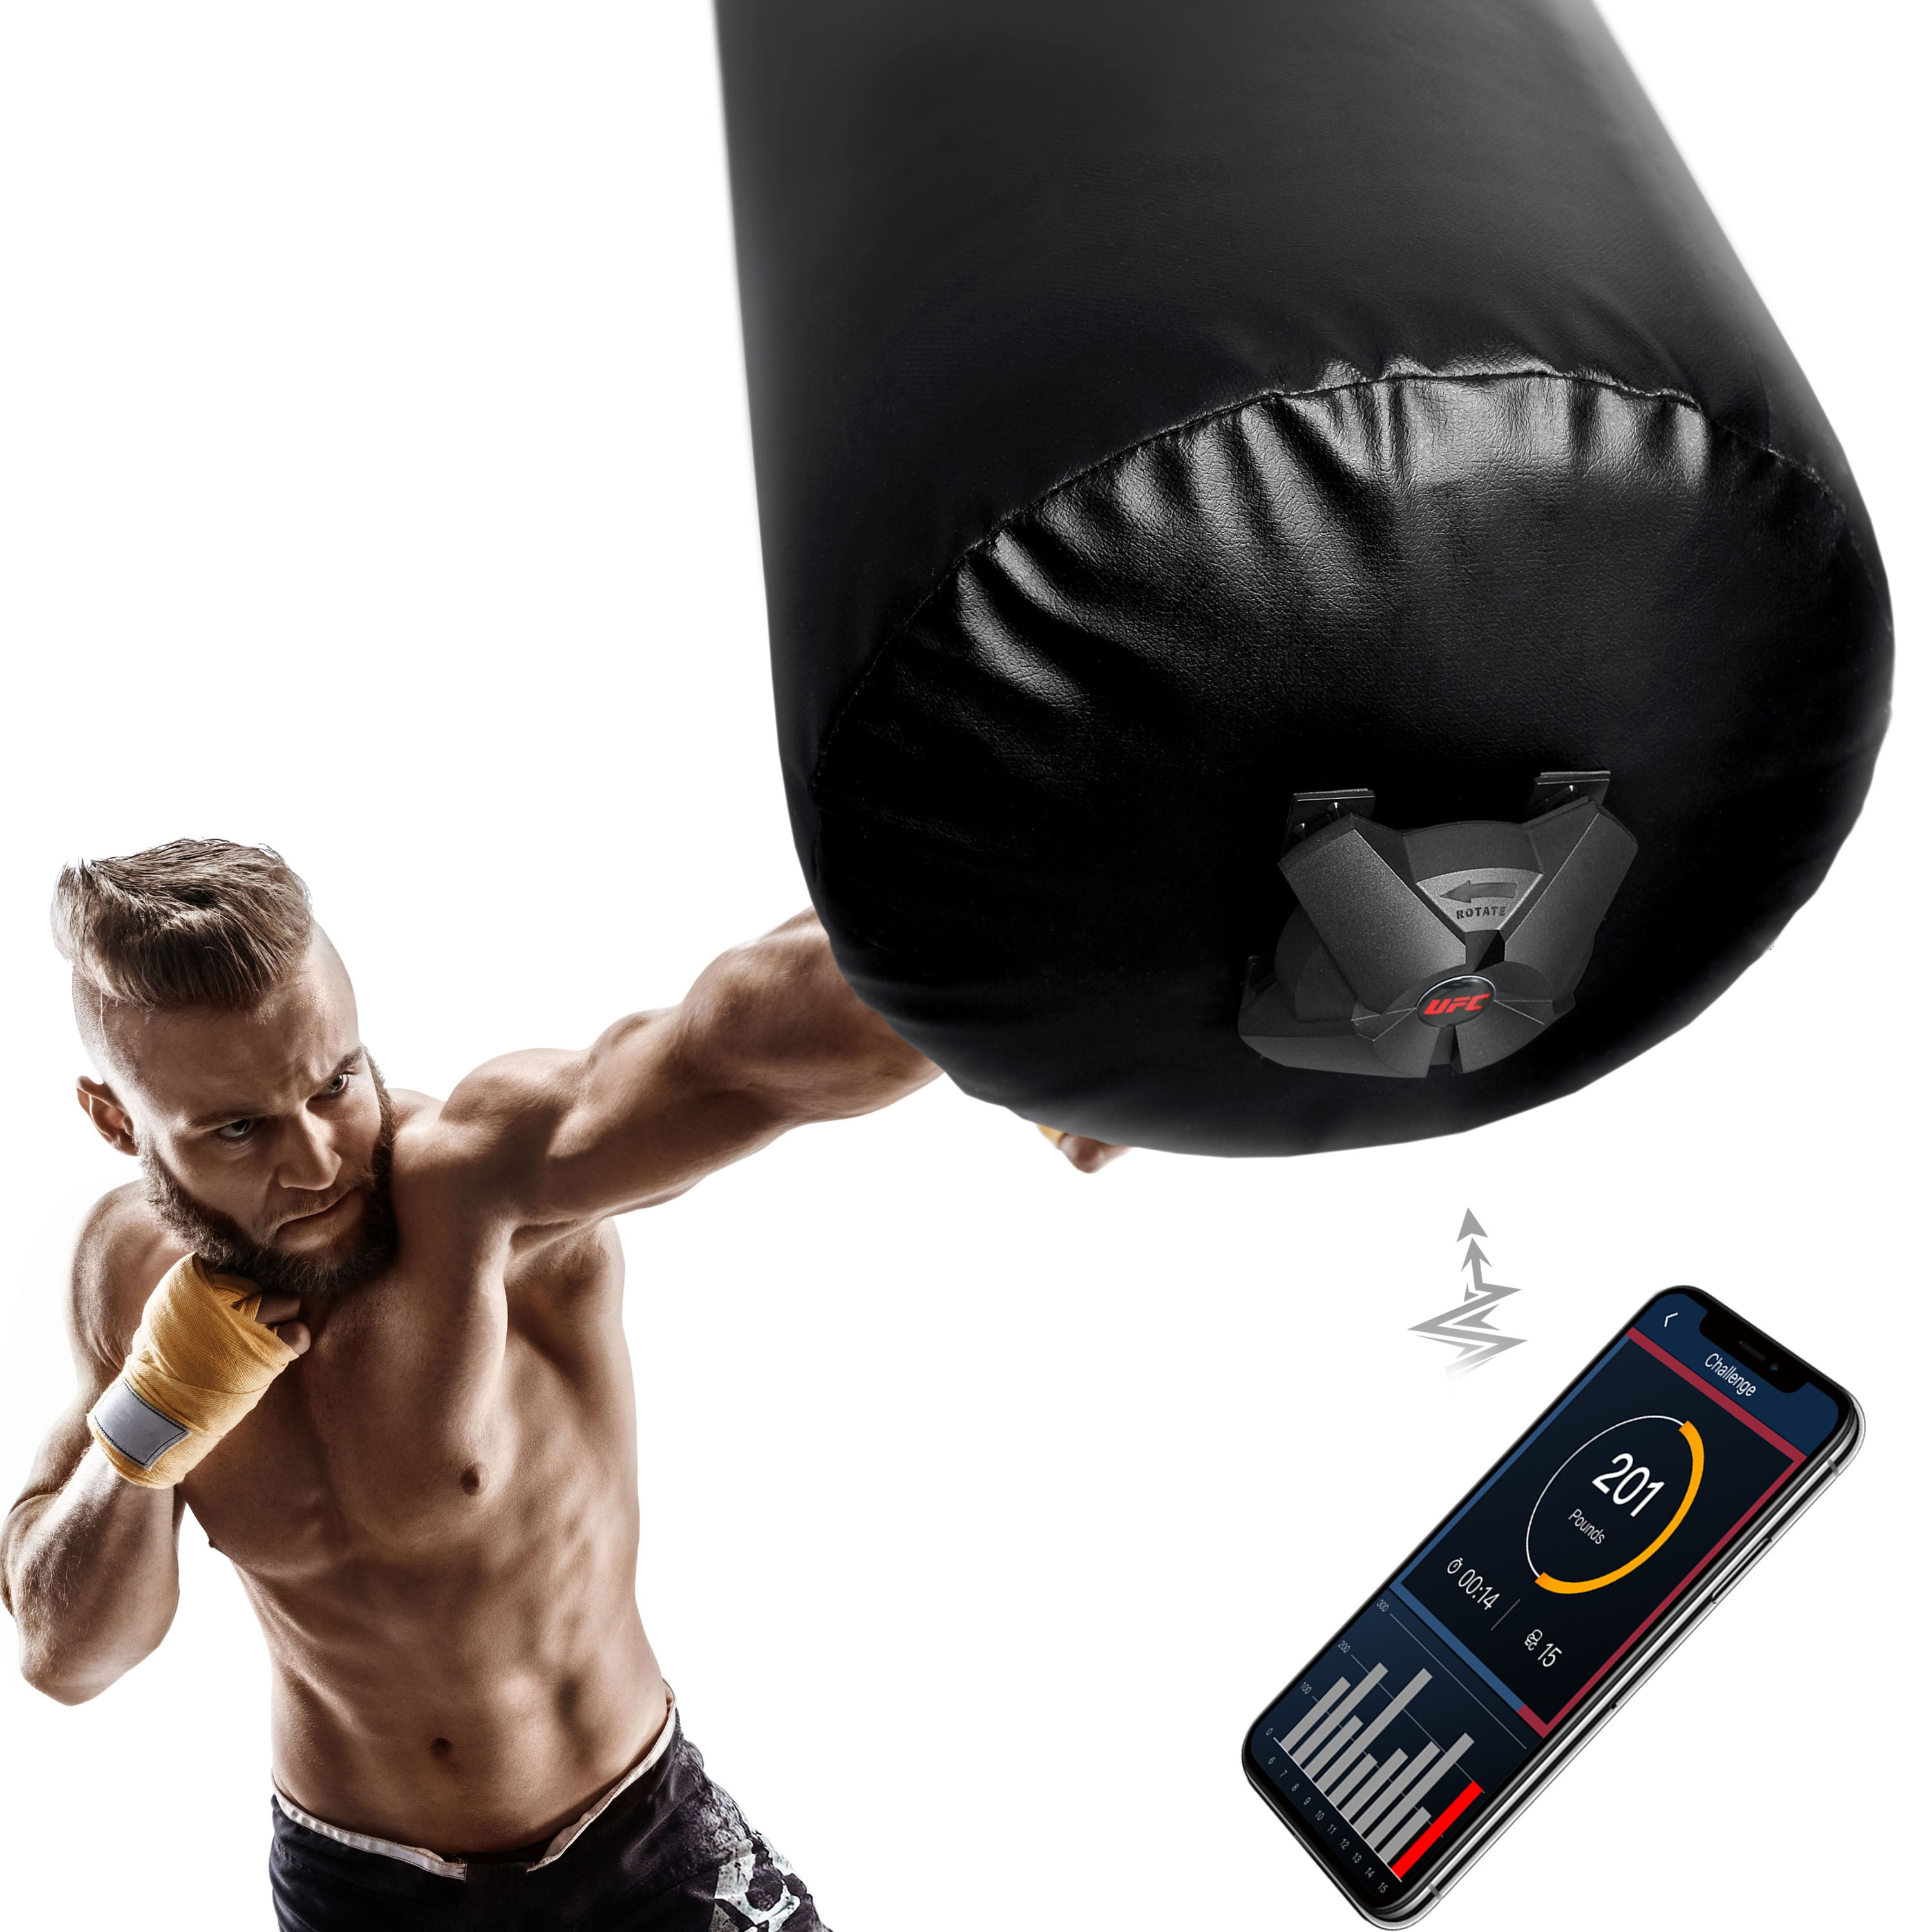 UFC Force Tracker Combat Strike Heavy Bag Attachment by TRI-GREAT USA CORP.